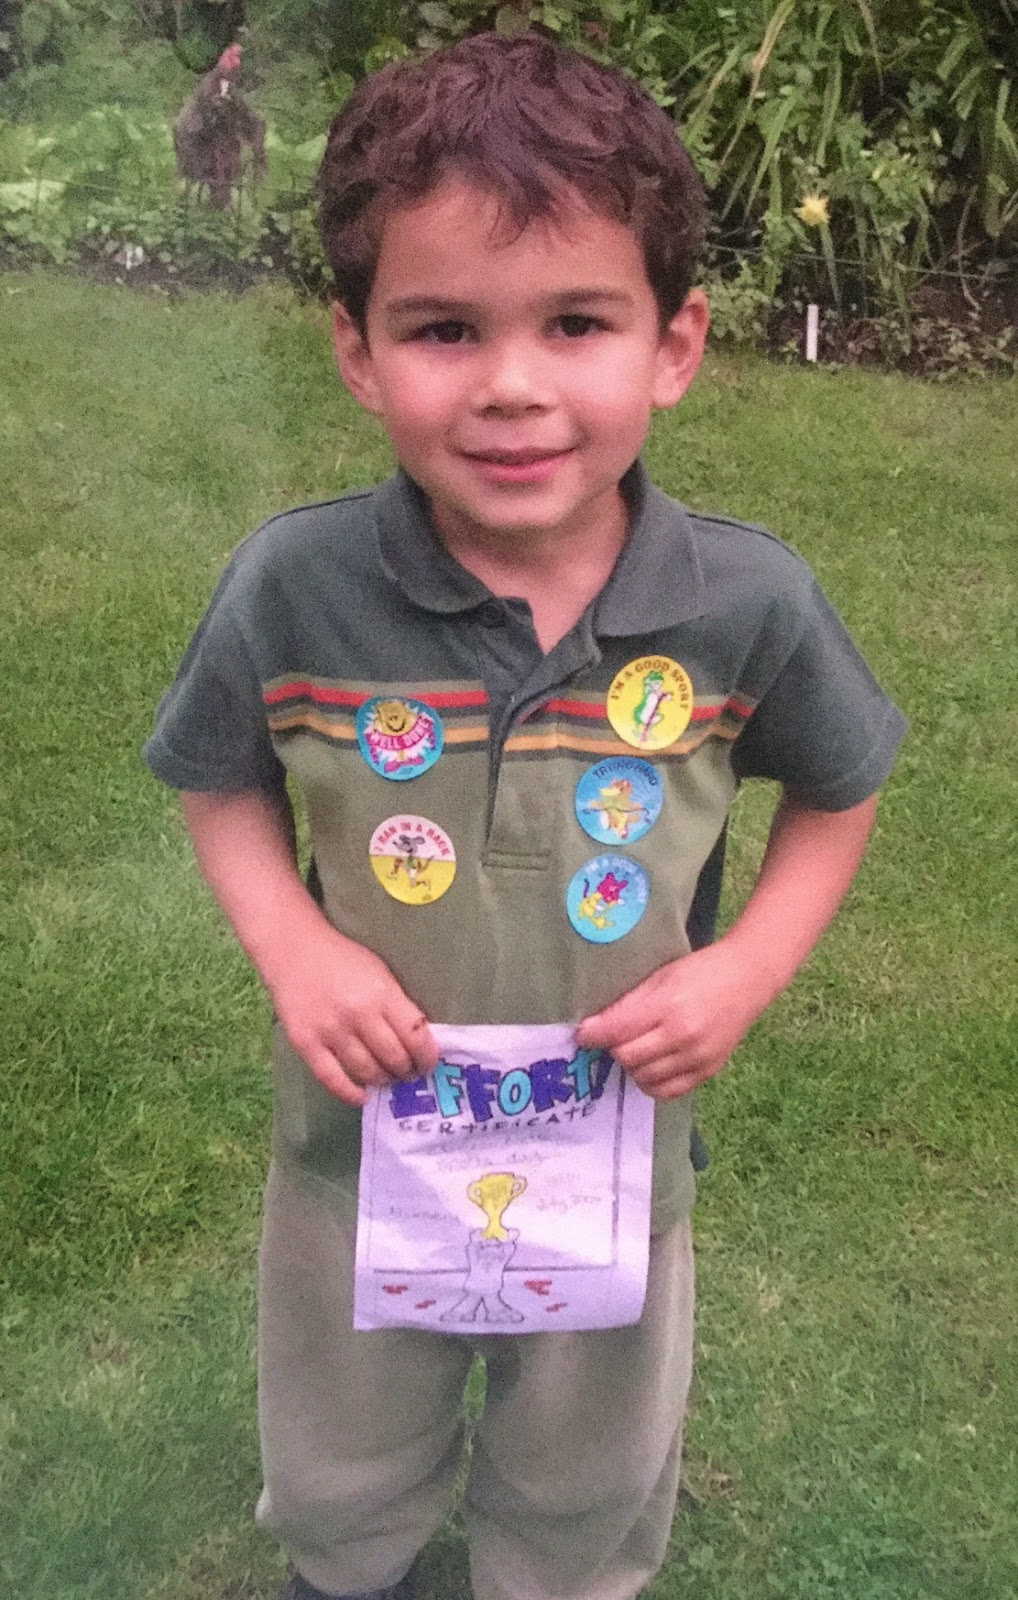 Pic of son on nursery school sports' day with winning stickers and effort certificate